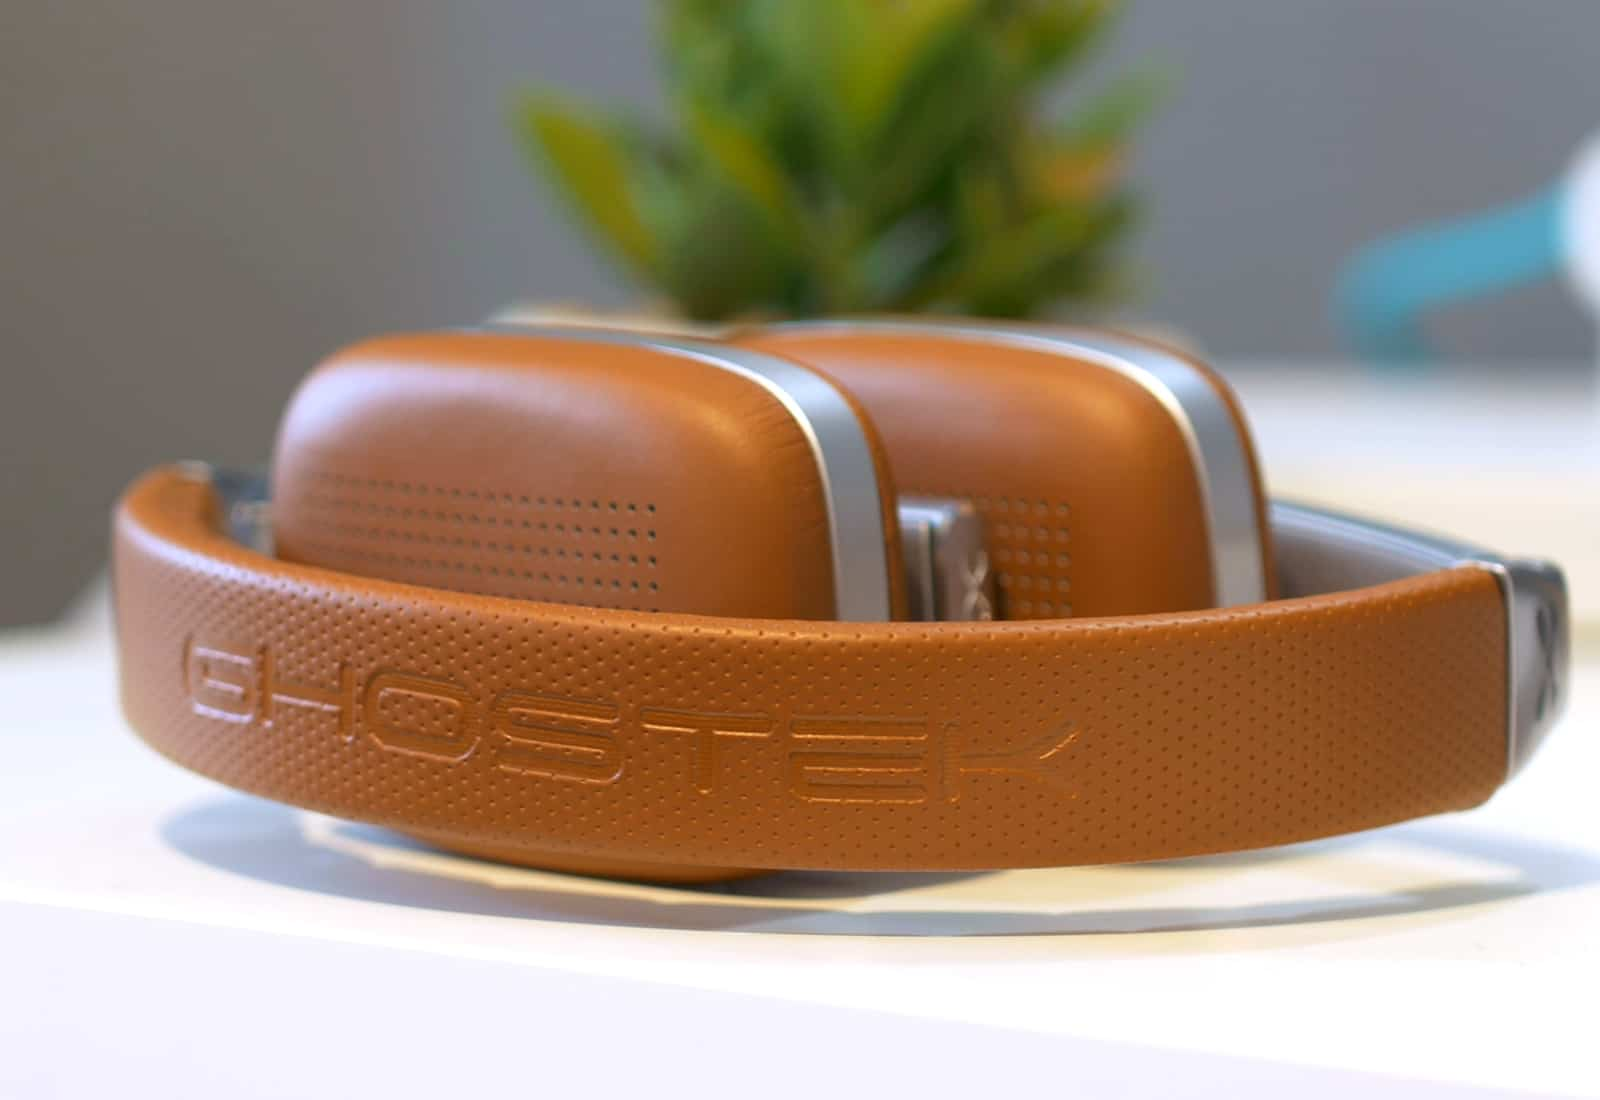 Ghostek Rapture headphones review: The Raptures fold up to about half their size for easy storage